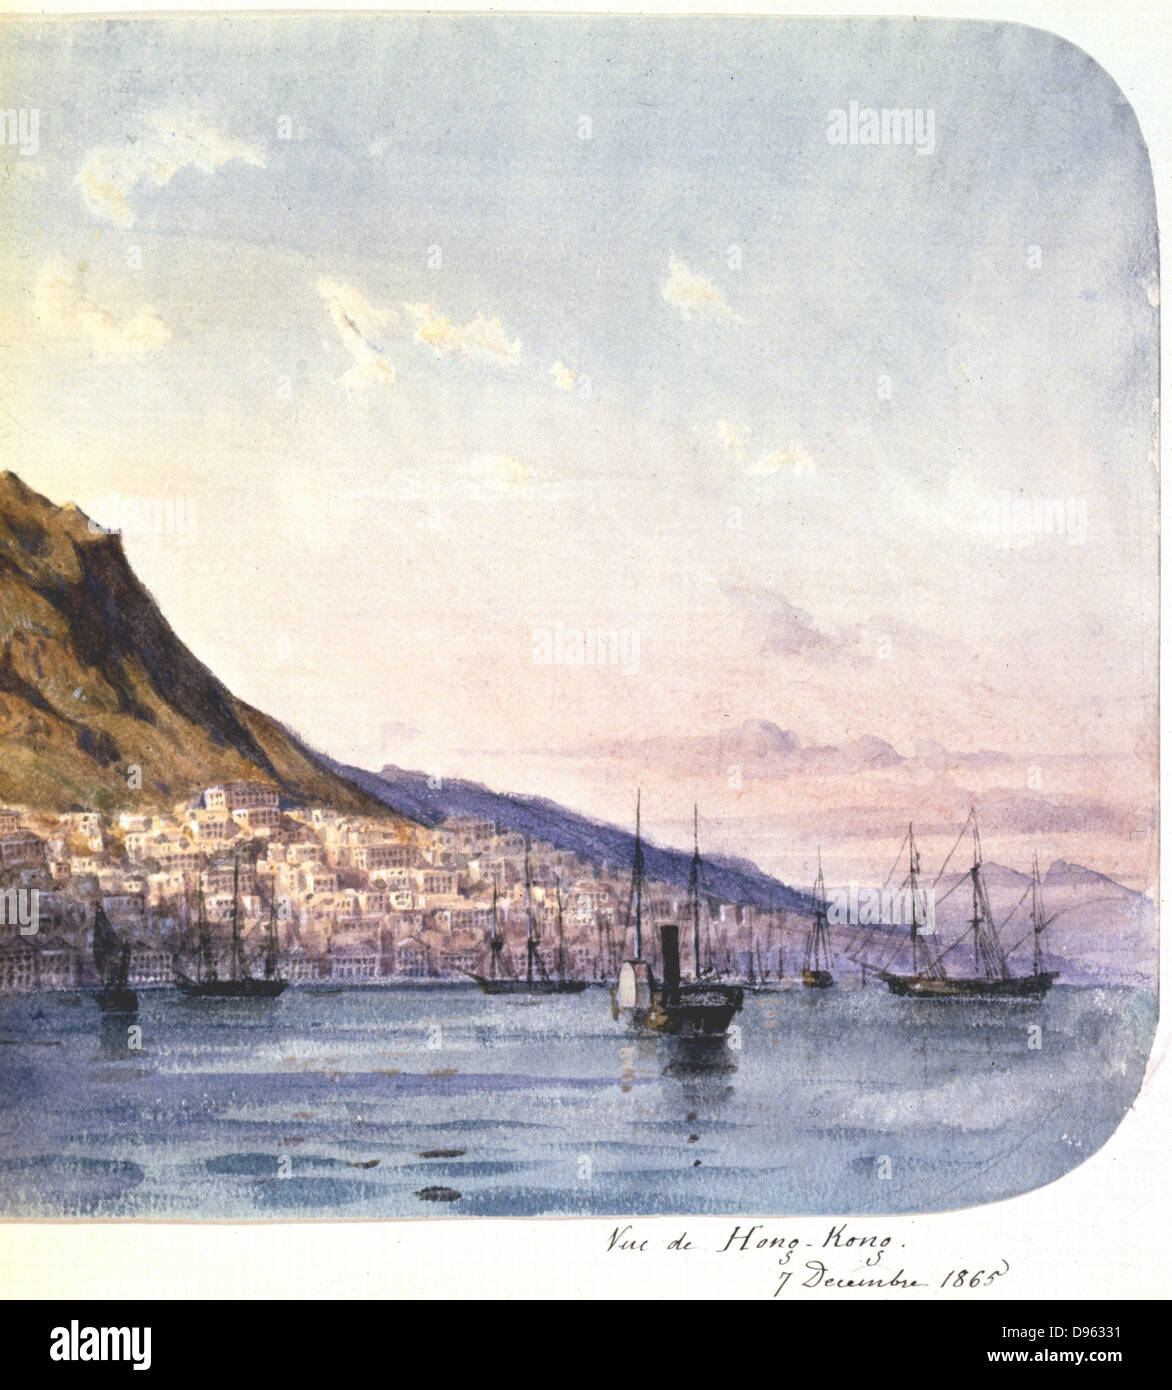 View of Hong Kong, 7 December 1865'. View showing paddle steamer and sailing vessels in the harbour and the - Stock Image